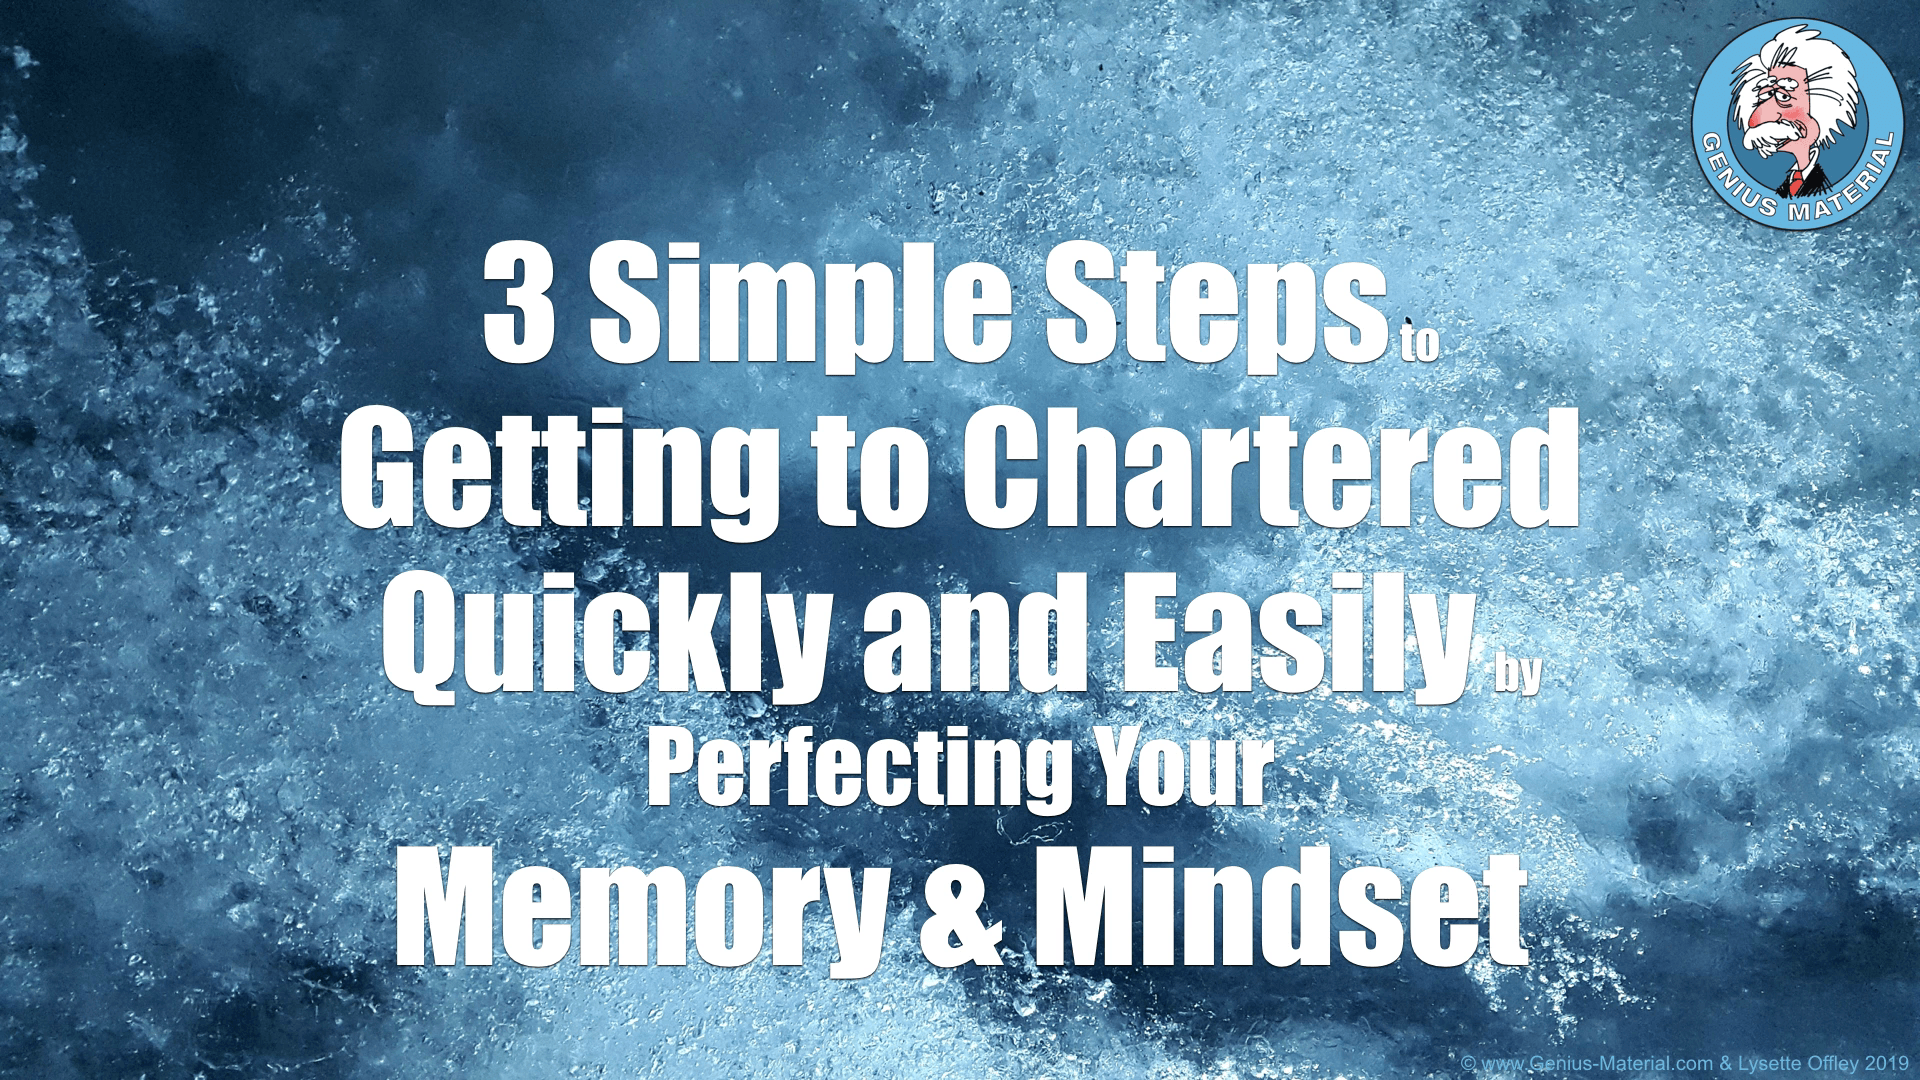 3 simple steps to Getting to Chartered Quickly and Easily by Perfecting your Memory and Mindset